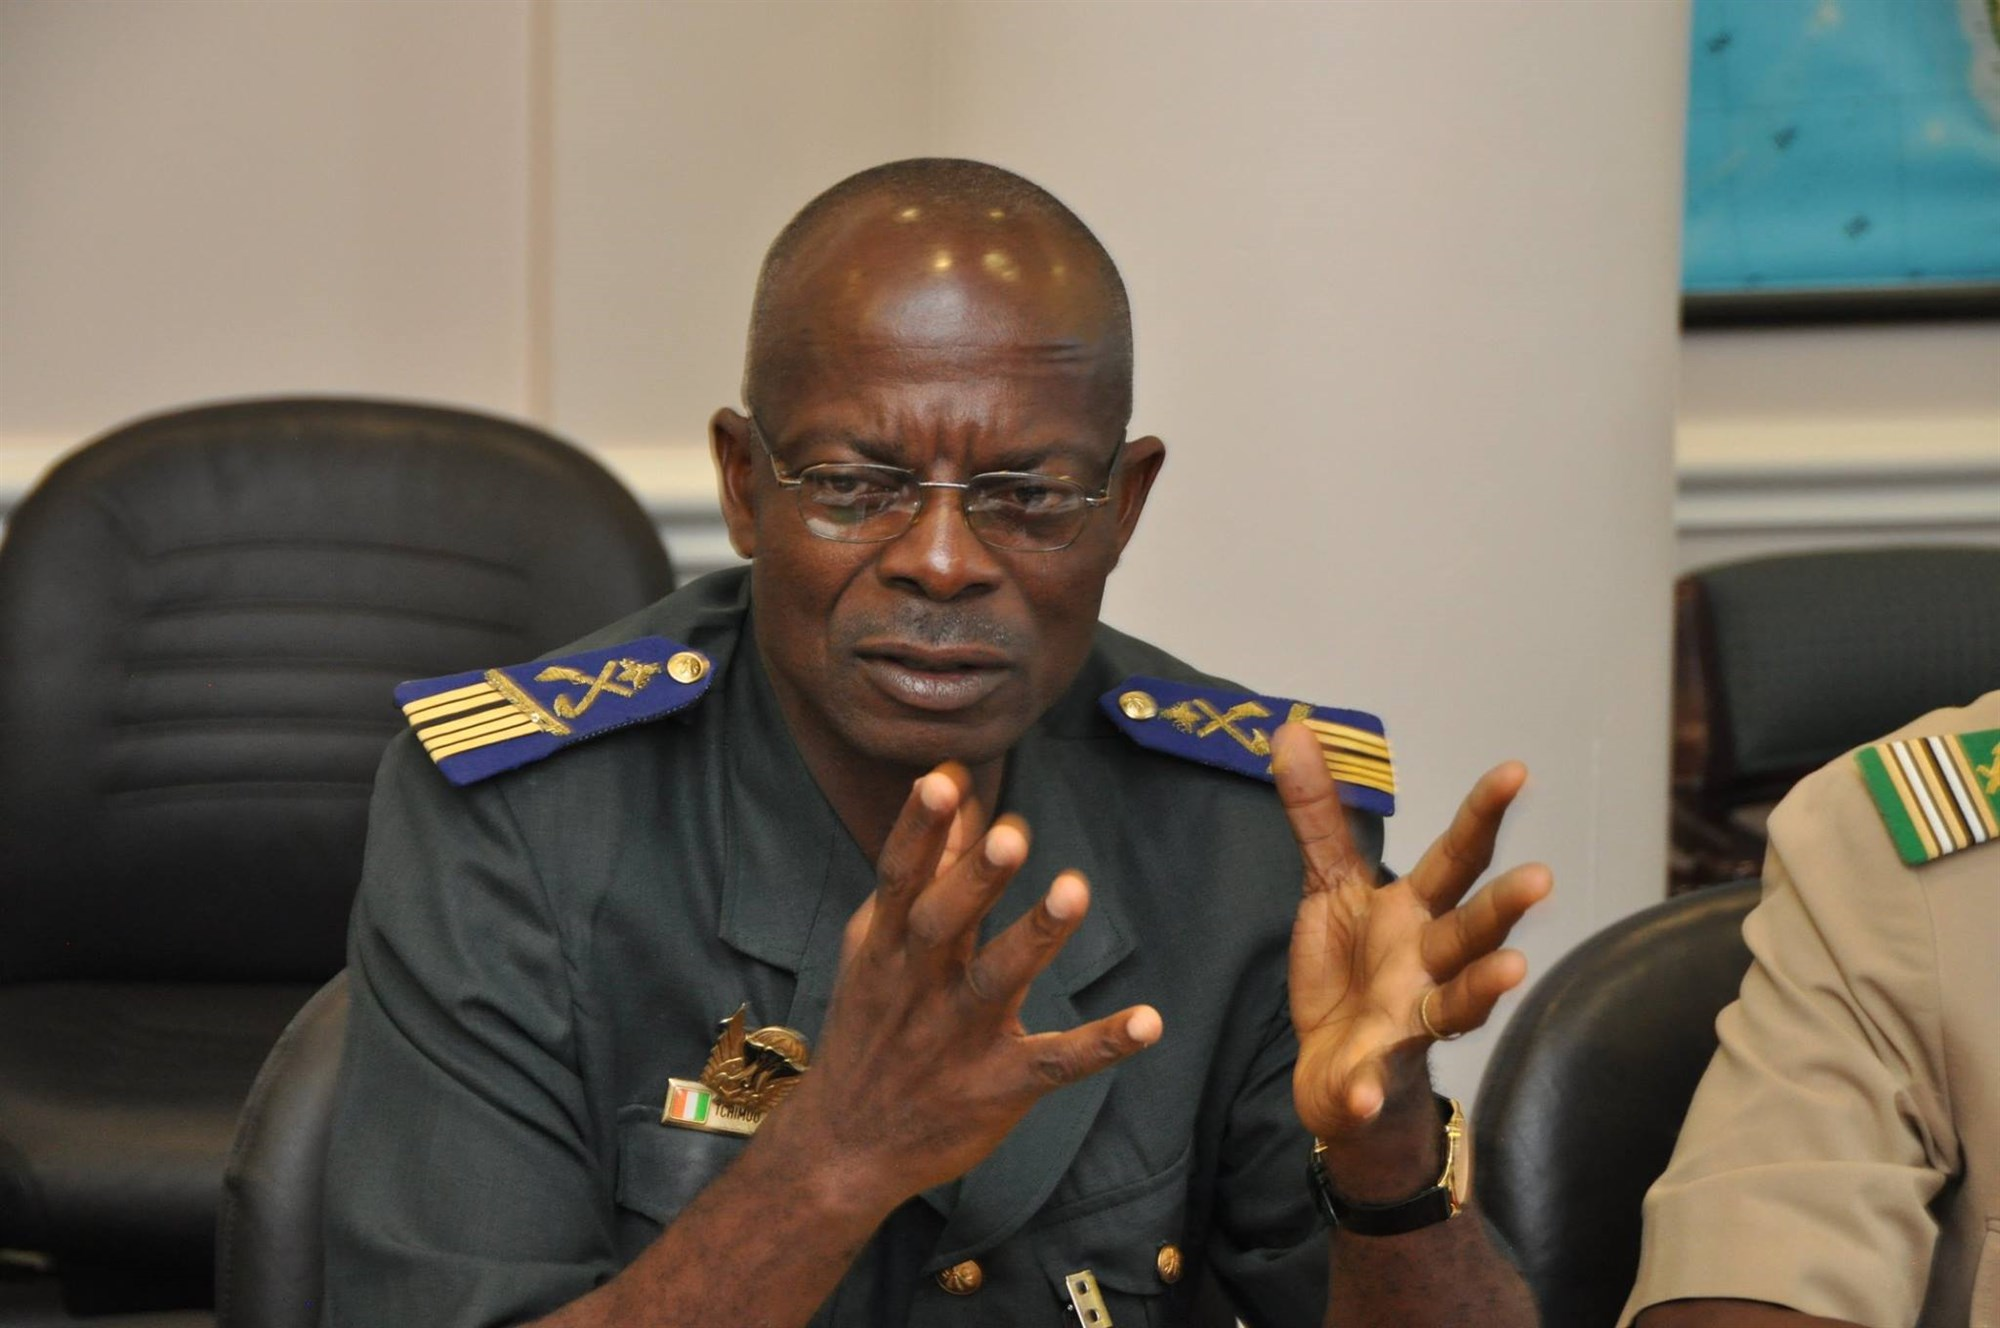 Col. Edi Tchimou from the Ivory Coast talks discusses cyber security during a visit to the National Defense University in Washington, July 20, 2015. The discussion was part of an AFRICOM-sponsored cyber security event.